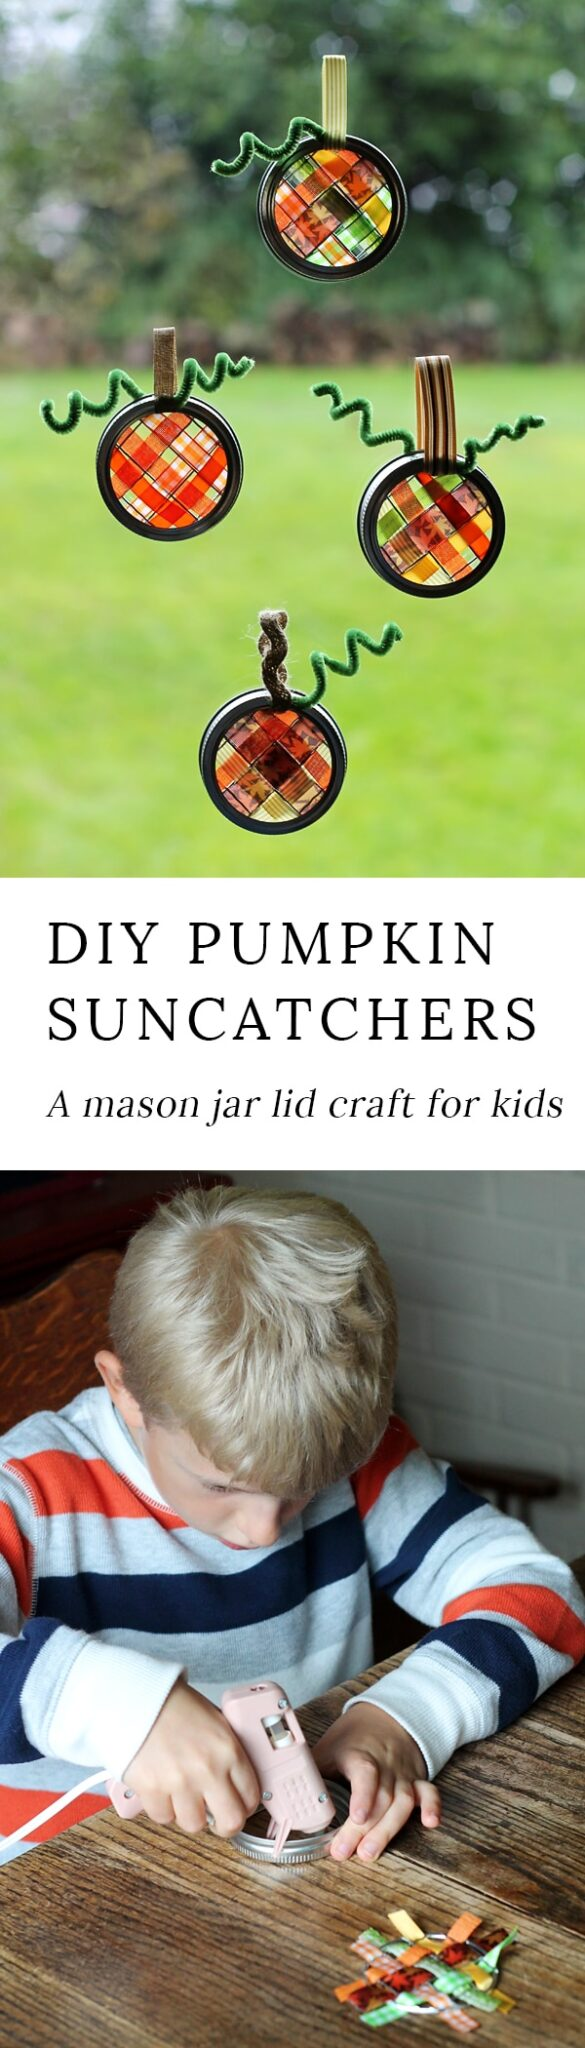 Just in time for fall, learn how to make vibrant pumpkin suncatchers with scraps of woven ribbon and mason jar lids.This weaving craft is perfect for kids!